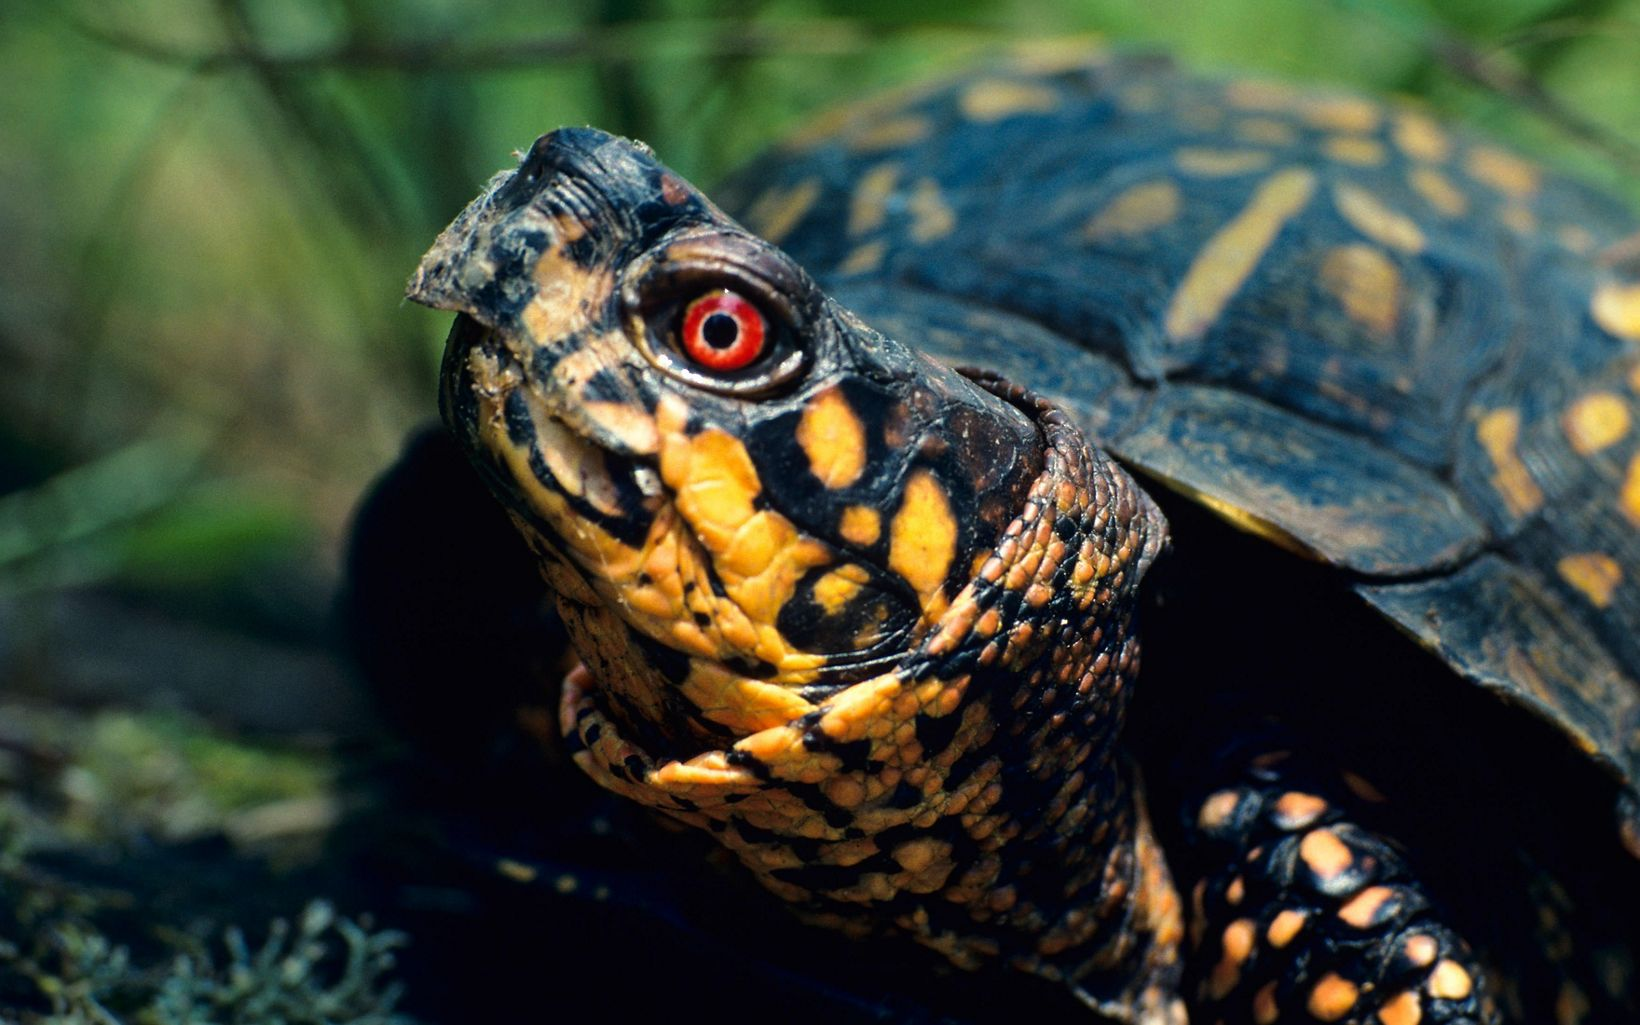 Box turtles such as this one can be found at Paw Paw.